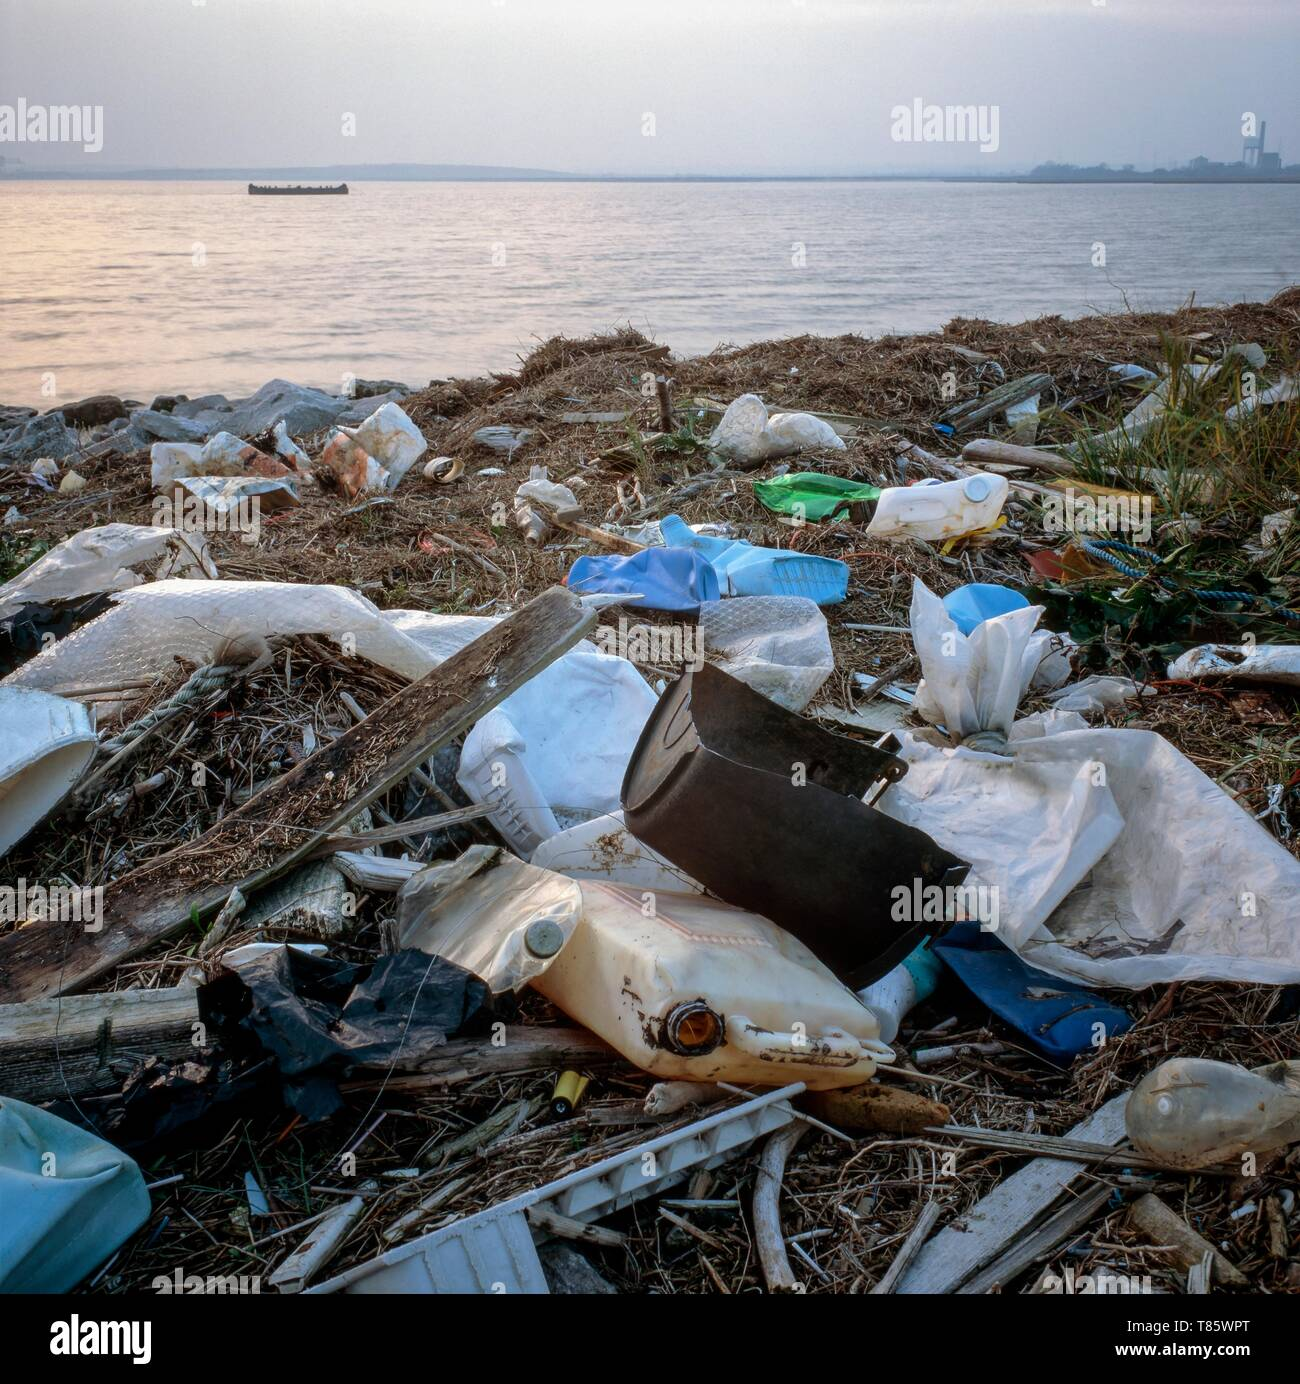 Plastic rubbish on shore - Stock Image